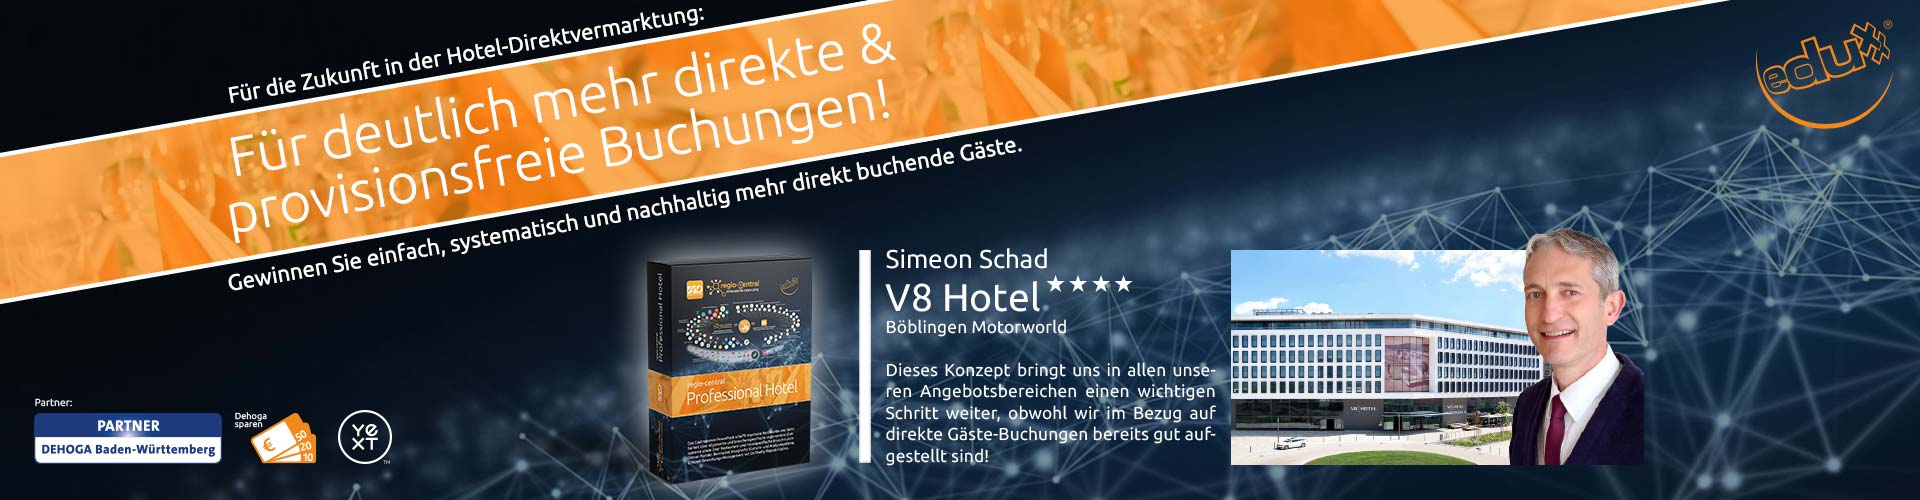 Hotel-Direktmarketing: Direkt-Buchungen provisionsfrei durch organisches Online-Marketing